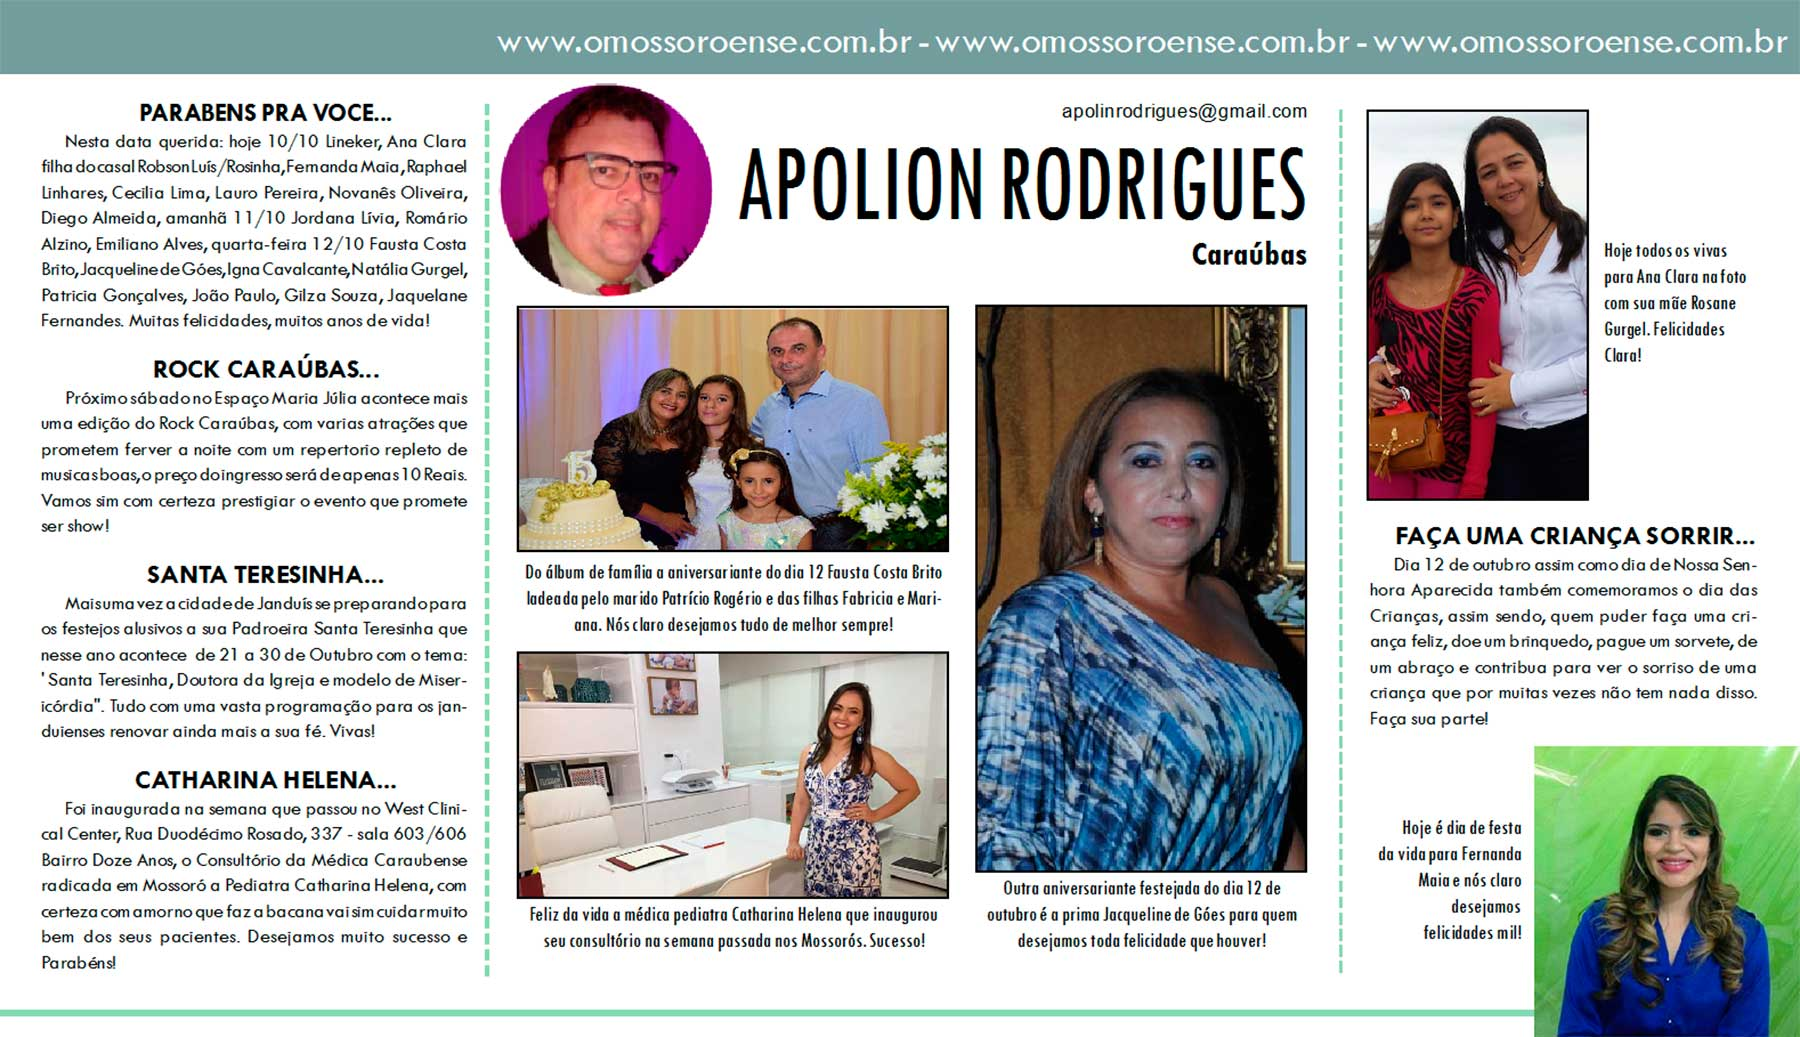 apolion-rodrigues-10-10-2016